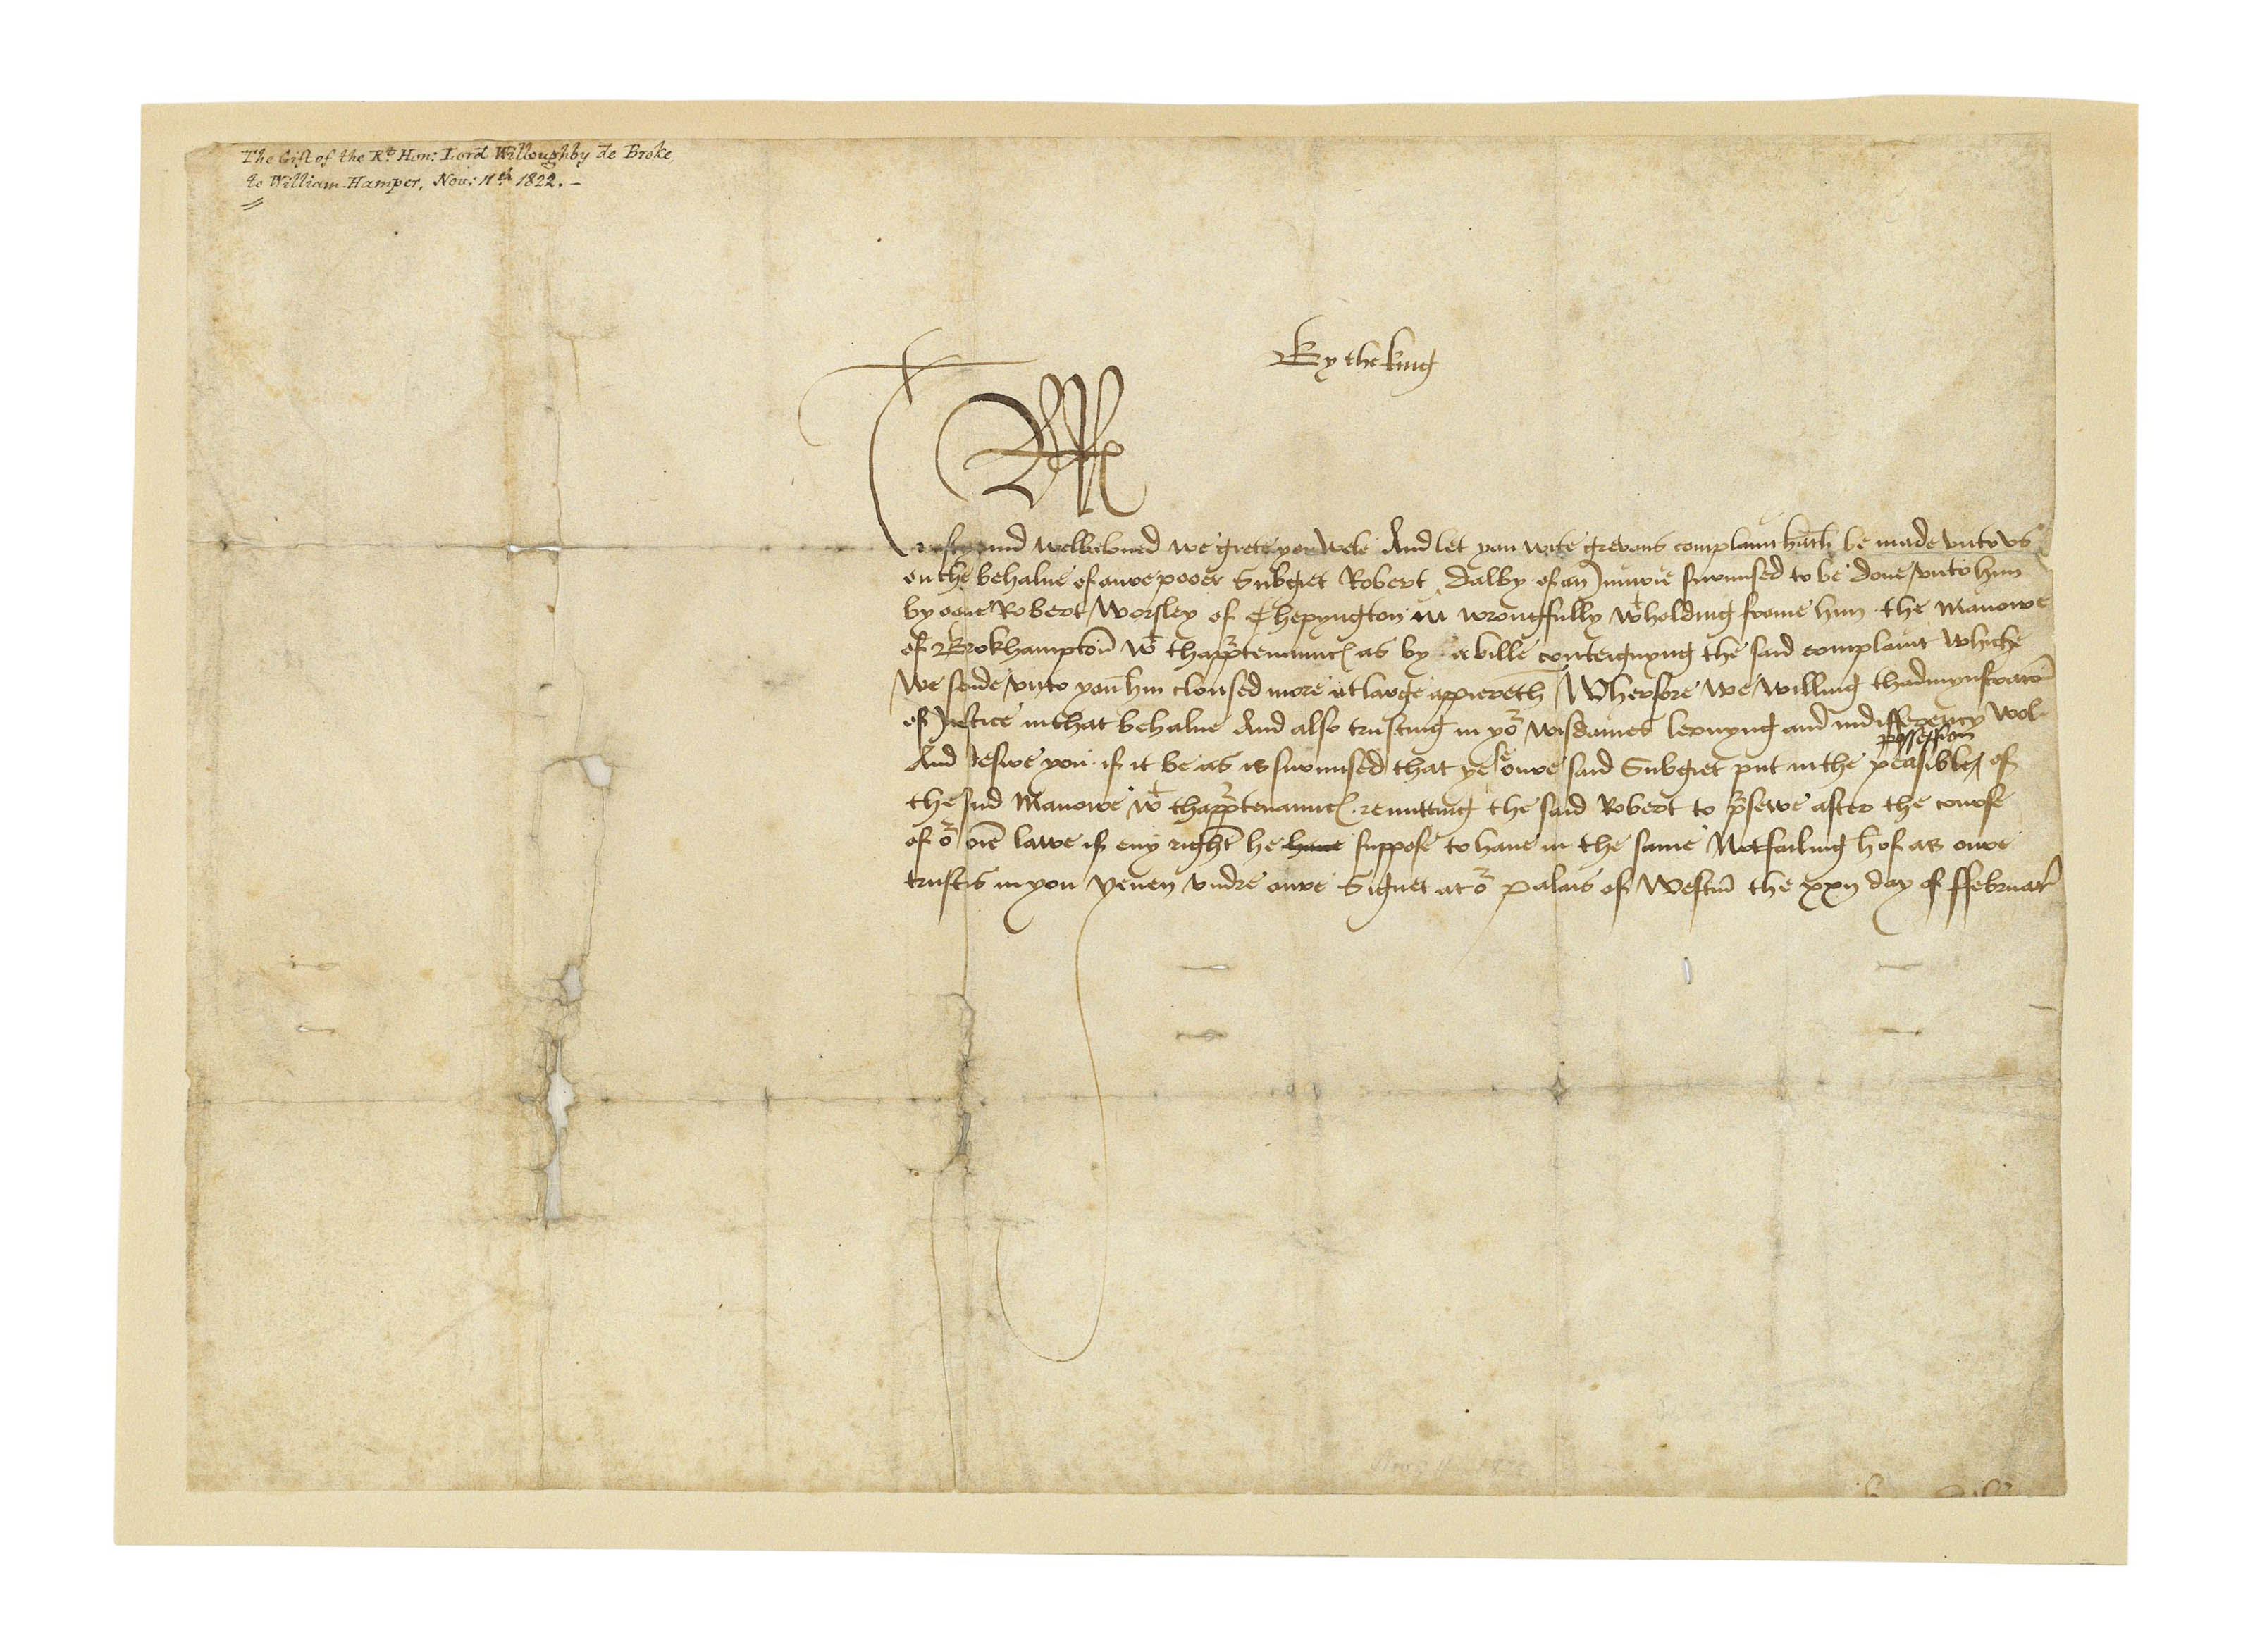 how to write a complaint letter about an employee rudeness richard iii 1452 1485 king of letter signed 1485